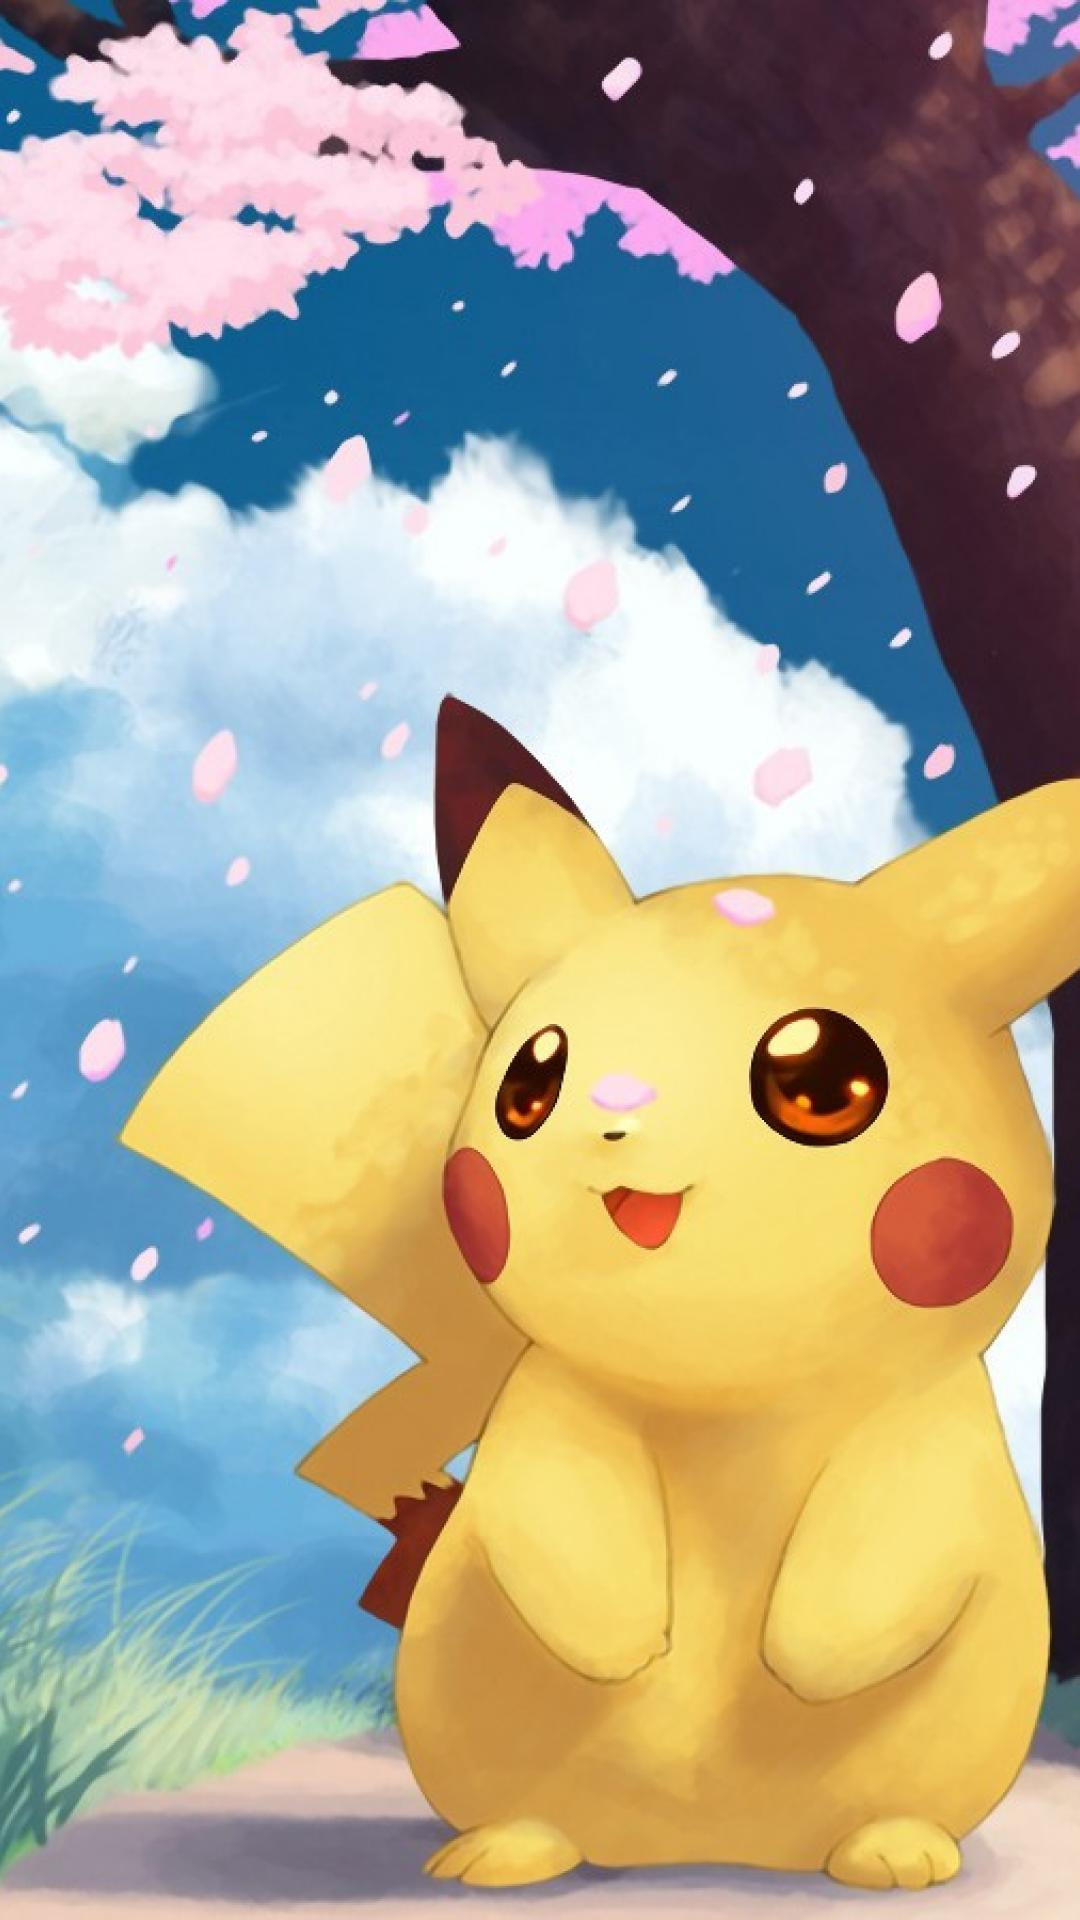 Pikachu Wallpapers For Phone